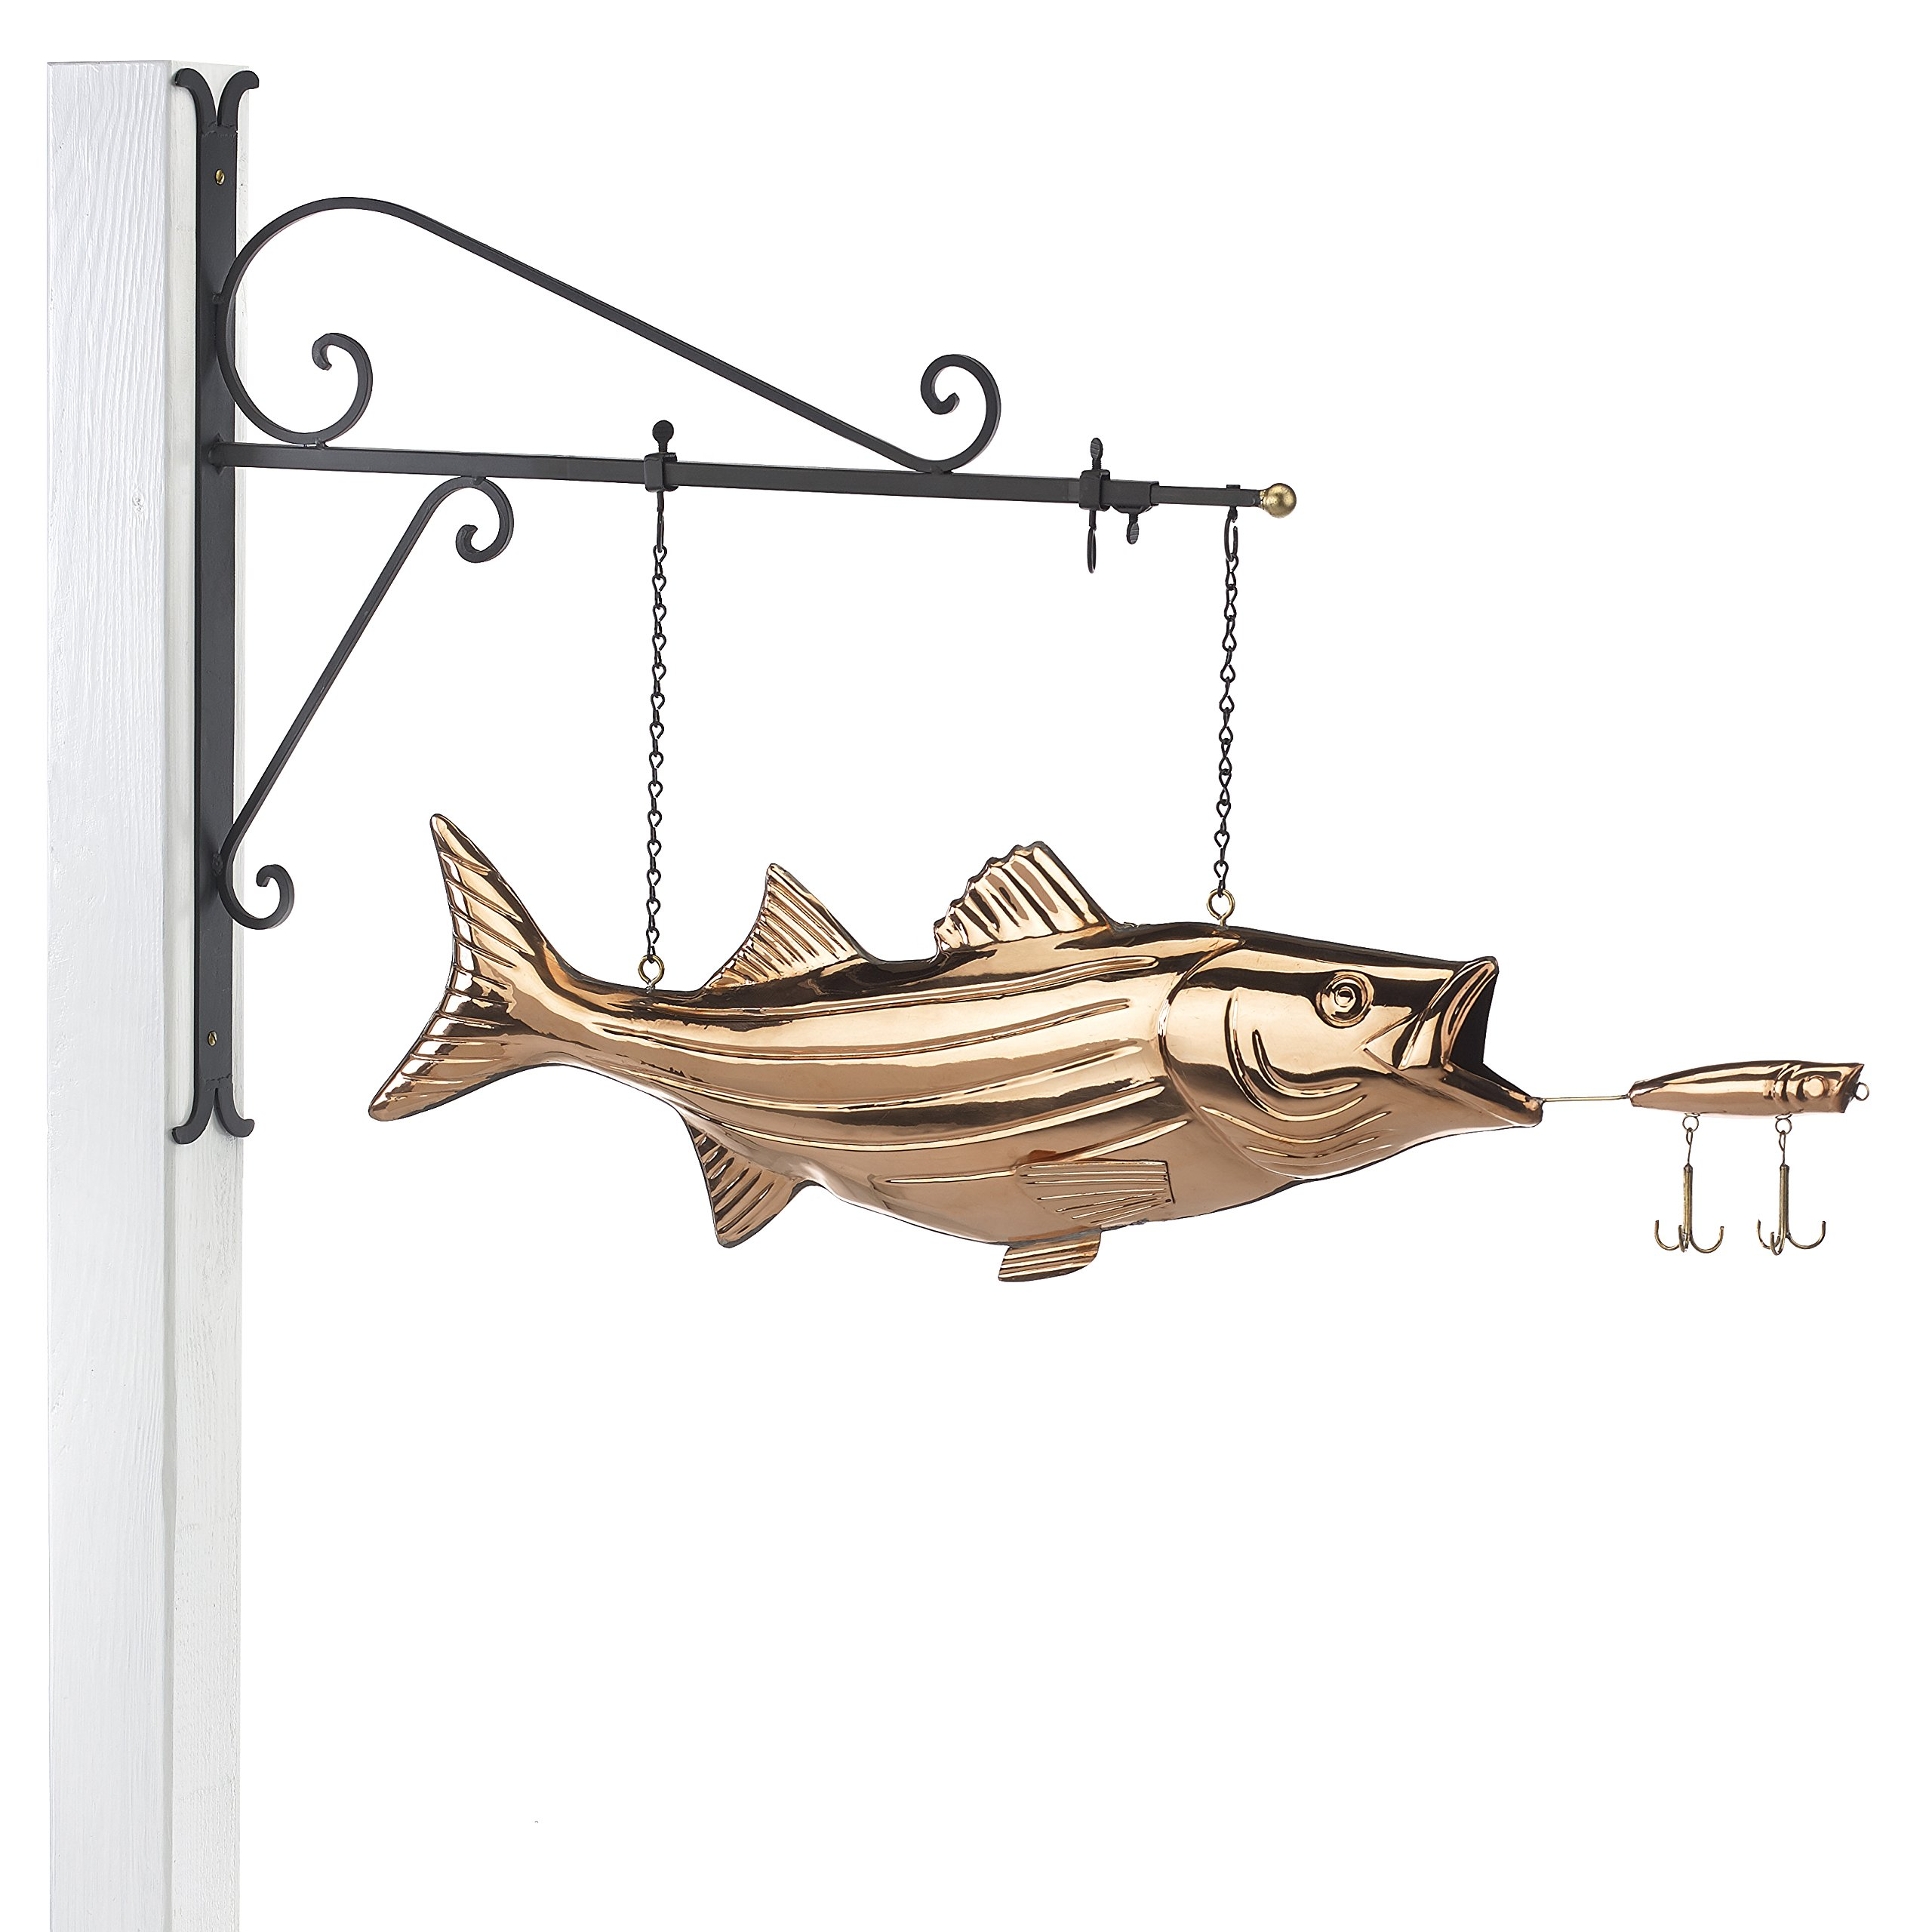 Good Directions Hanging Bass with Lure Pure Copper Weathervane Sign with Decorative Scroll Wall Bracket - Welcome Sign, Home/Entrance/Entryway Décor